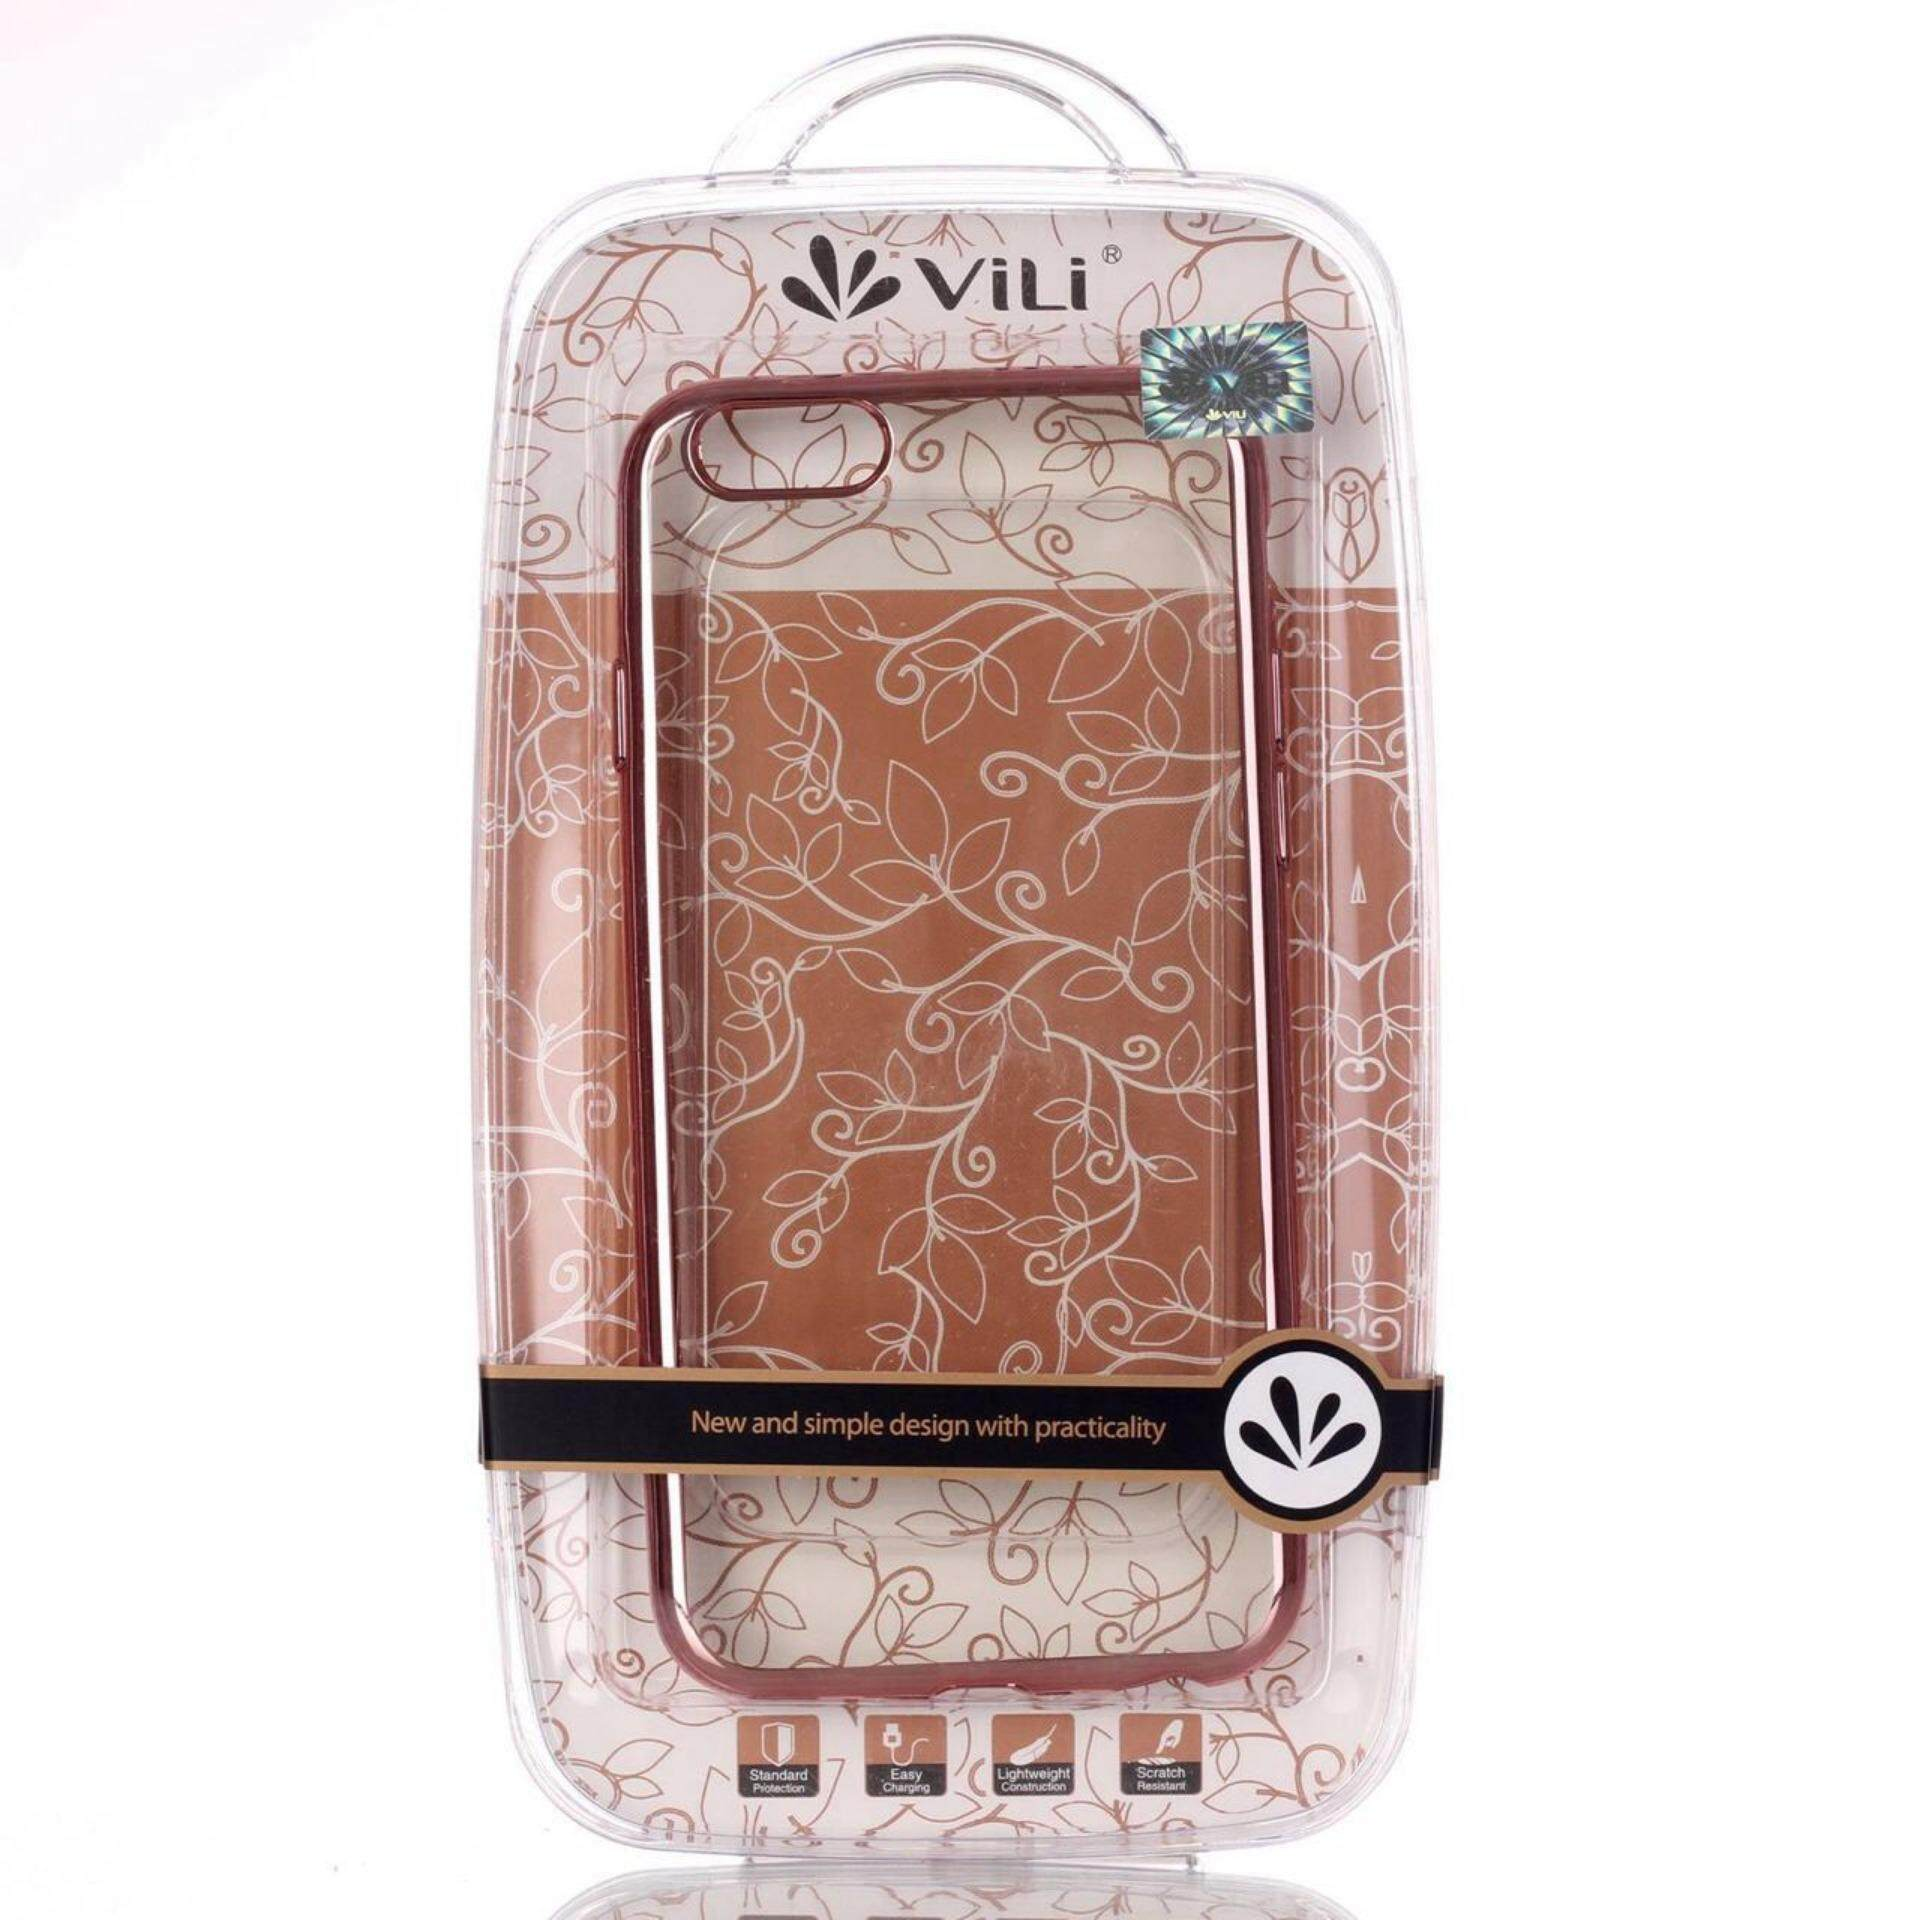 ViLi Apple iPhone 6 Plus 6s Plus TPU Silicone Ultrathin Luxury Slim Electroplating Crystal Clear Transparent Soft Back Cover Case Covers (Pink Rose Gold) FREE 2 Screen Protector